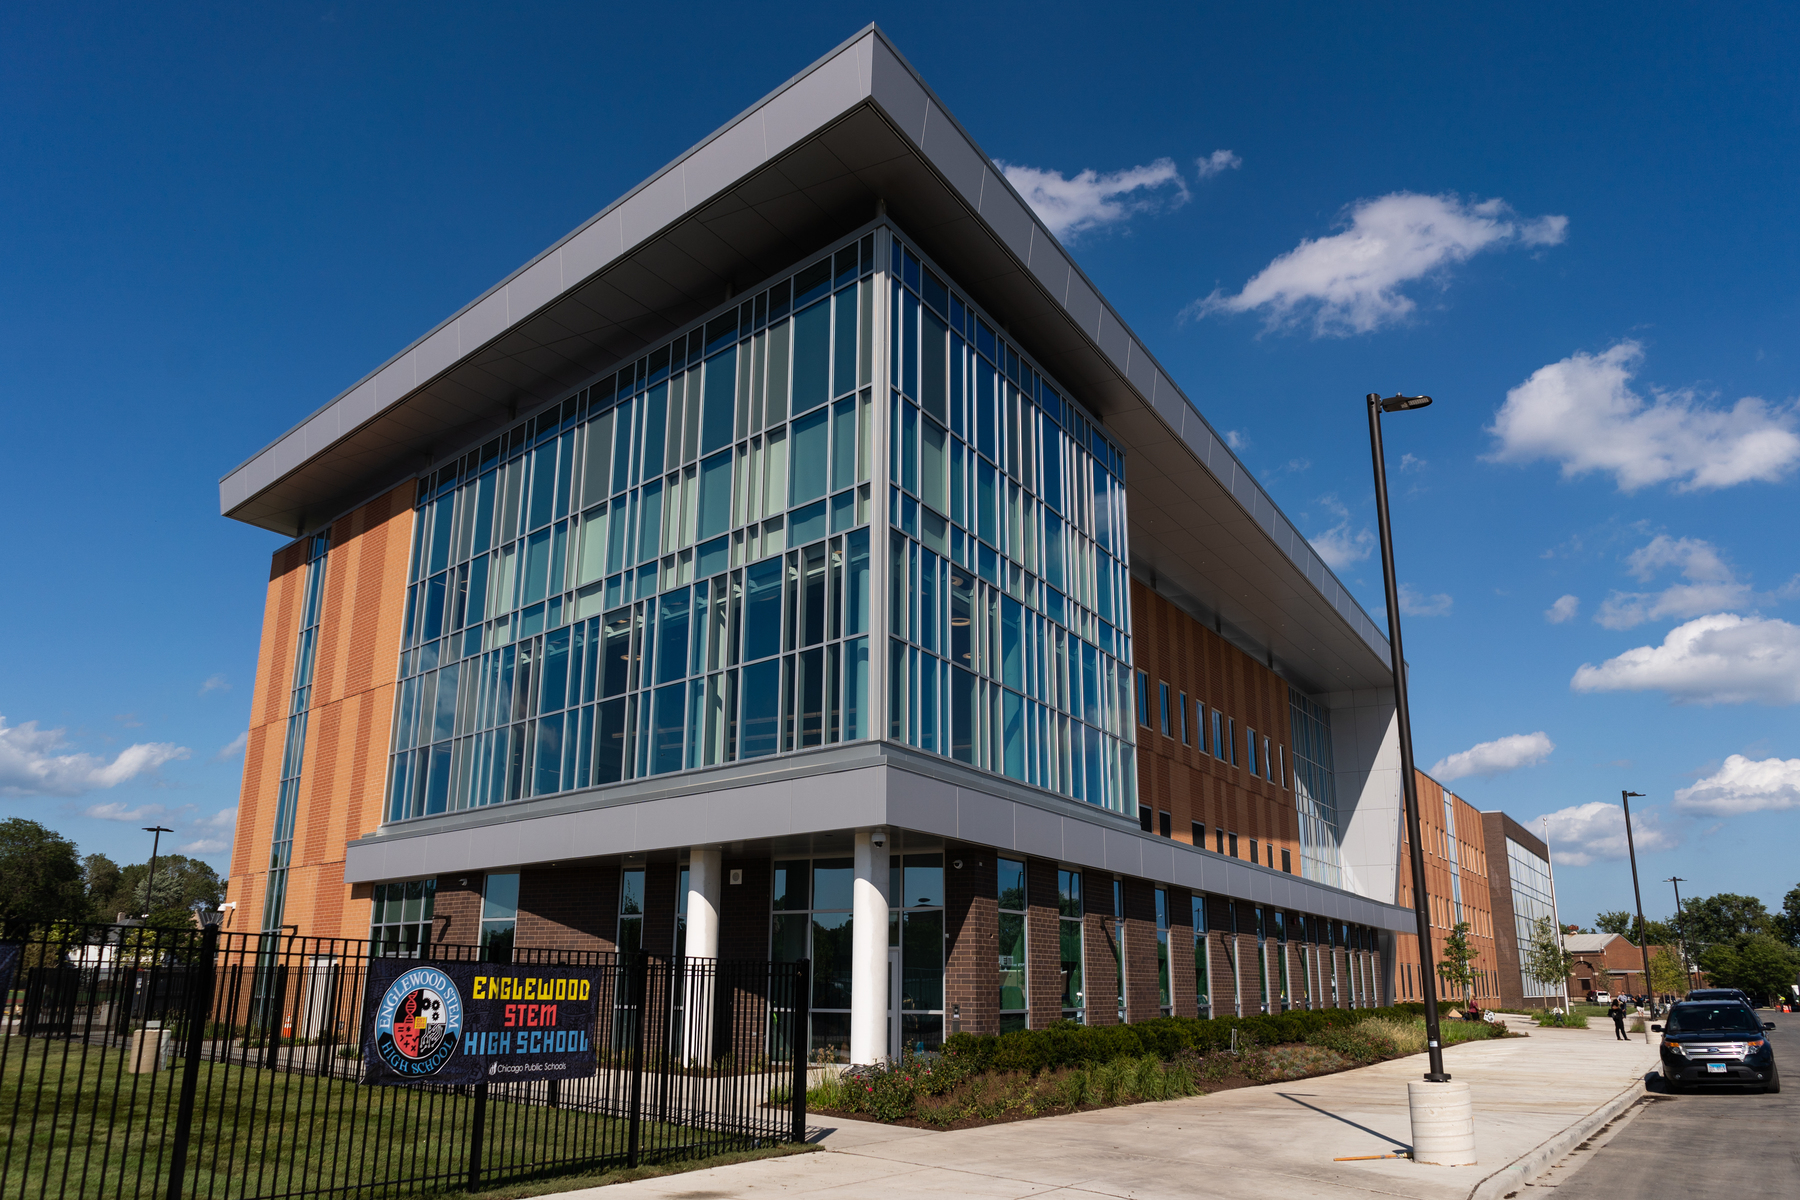 An exterior view of Englewood STEM High School which opens its doors on September 3.